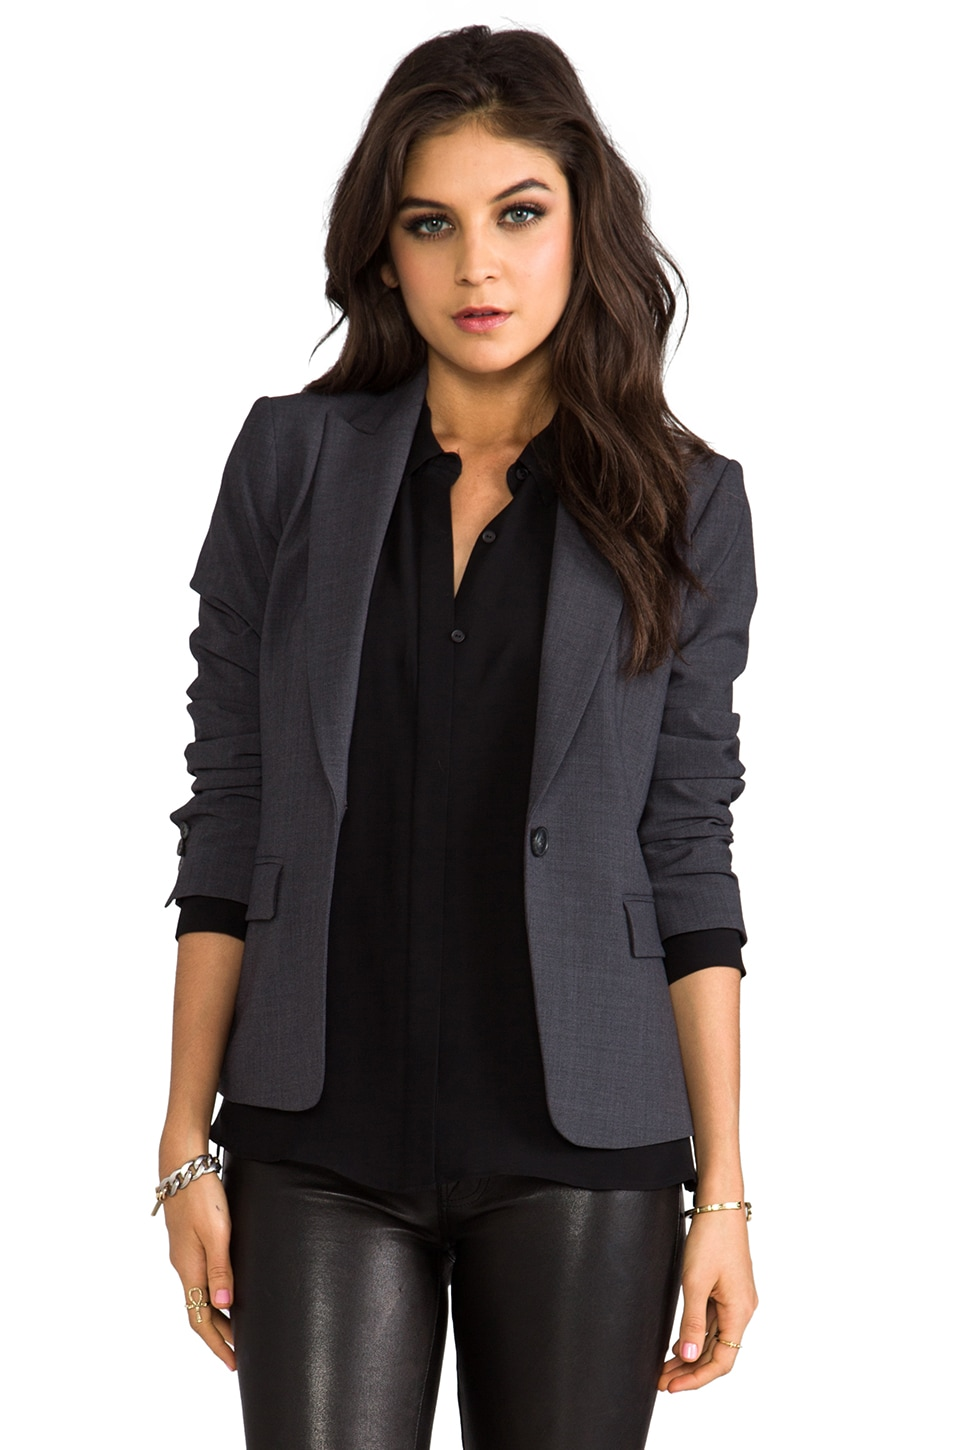 Theory Gabe 2 Blazer in Charcoal